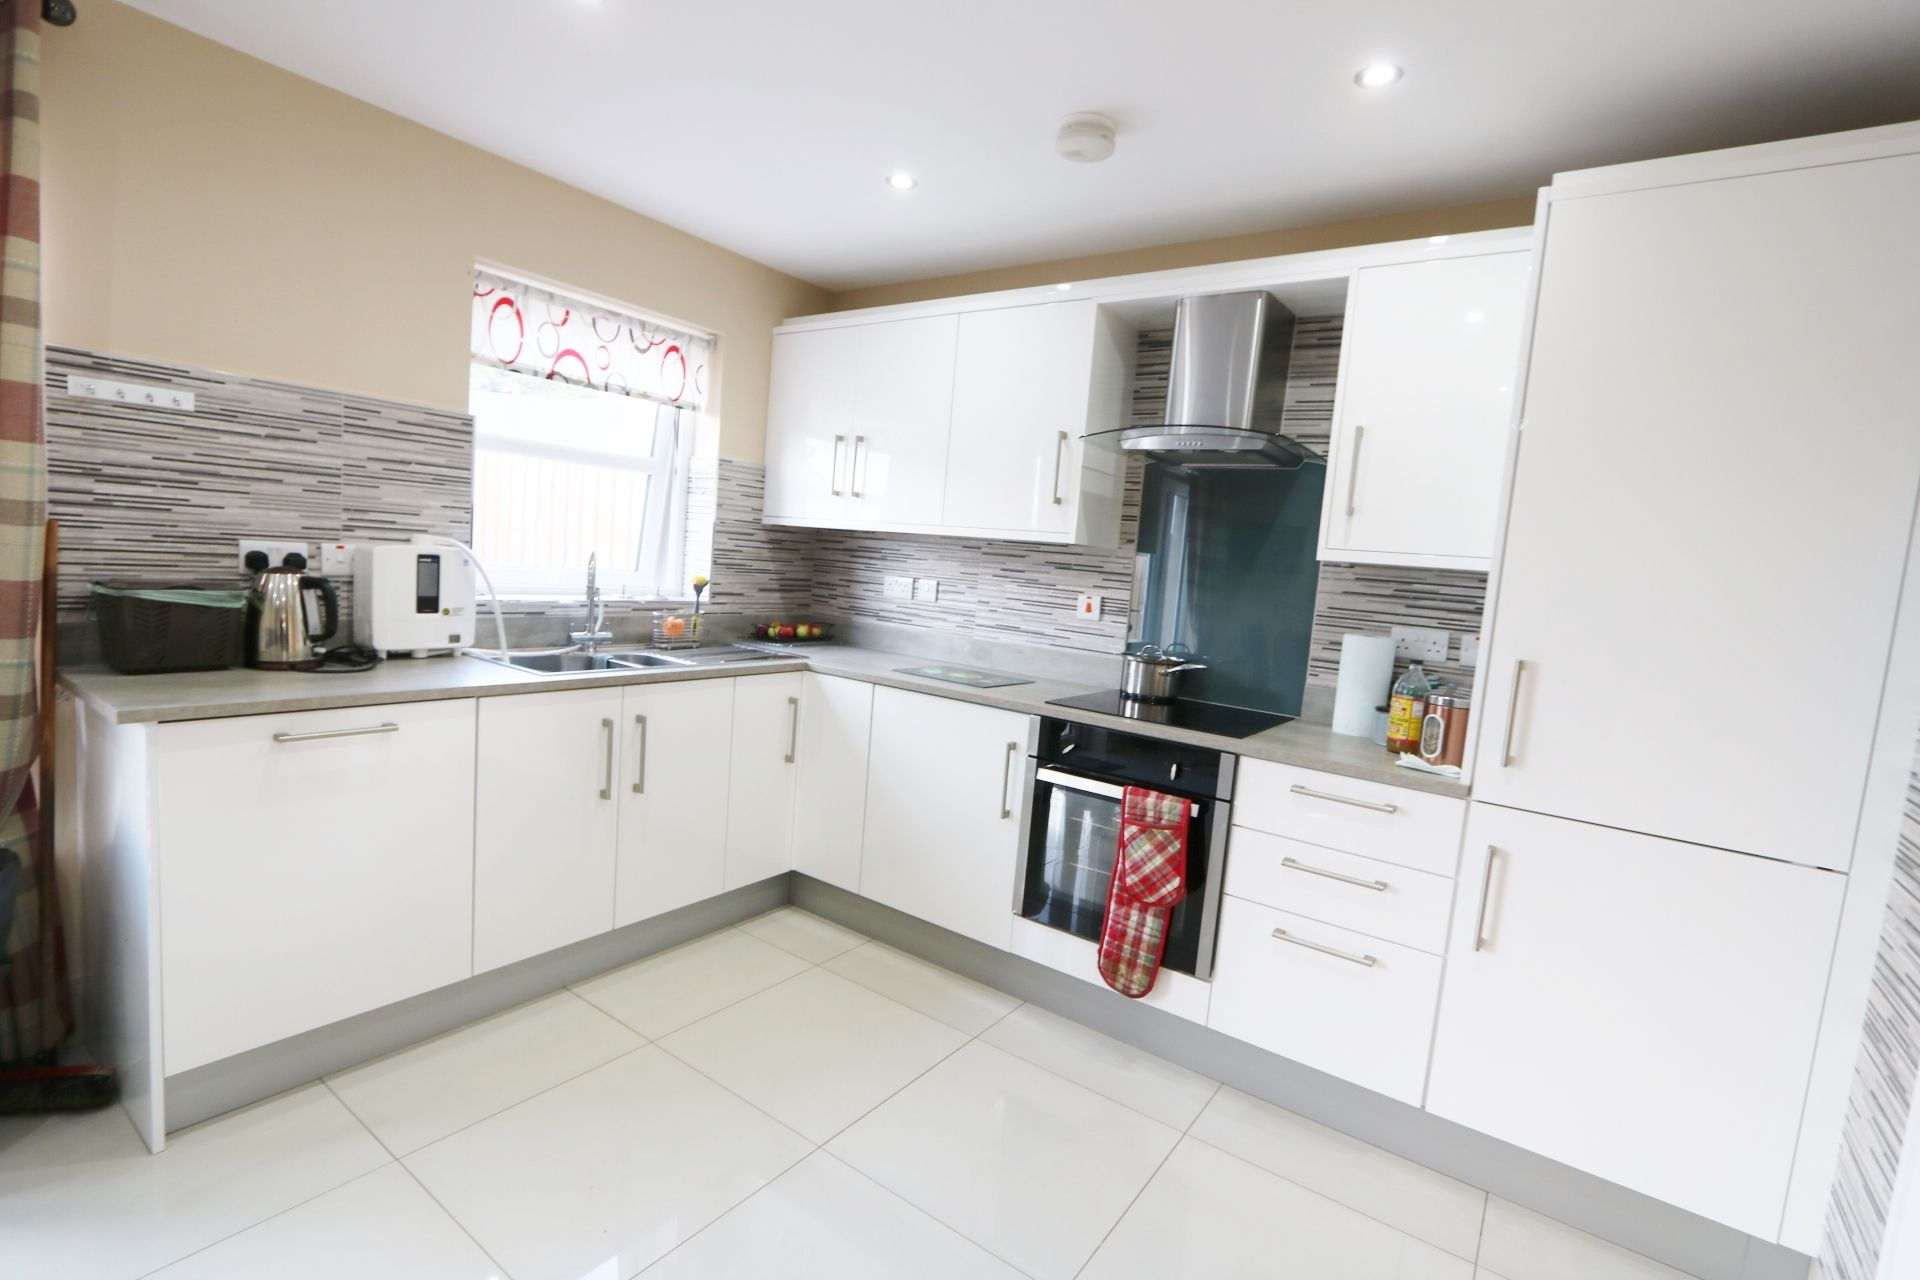 3 bedroom semi-detached house For Sale in Milltown, Randalstown - Photograph 4